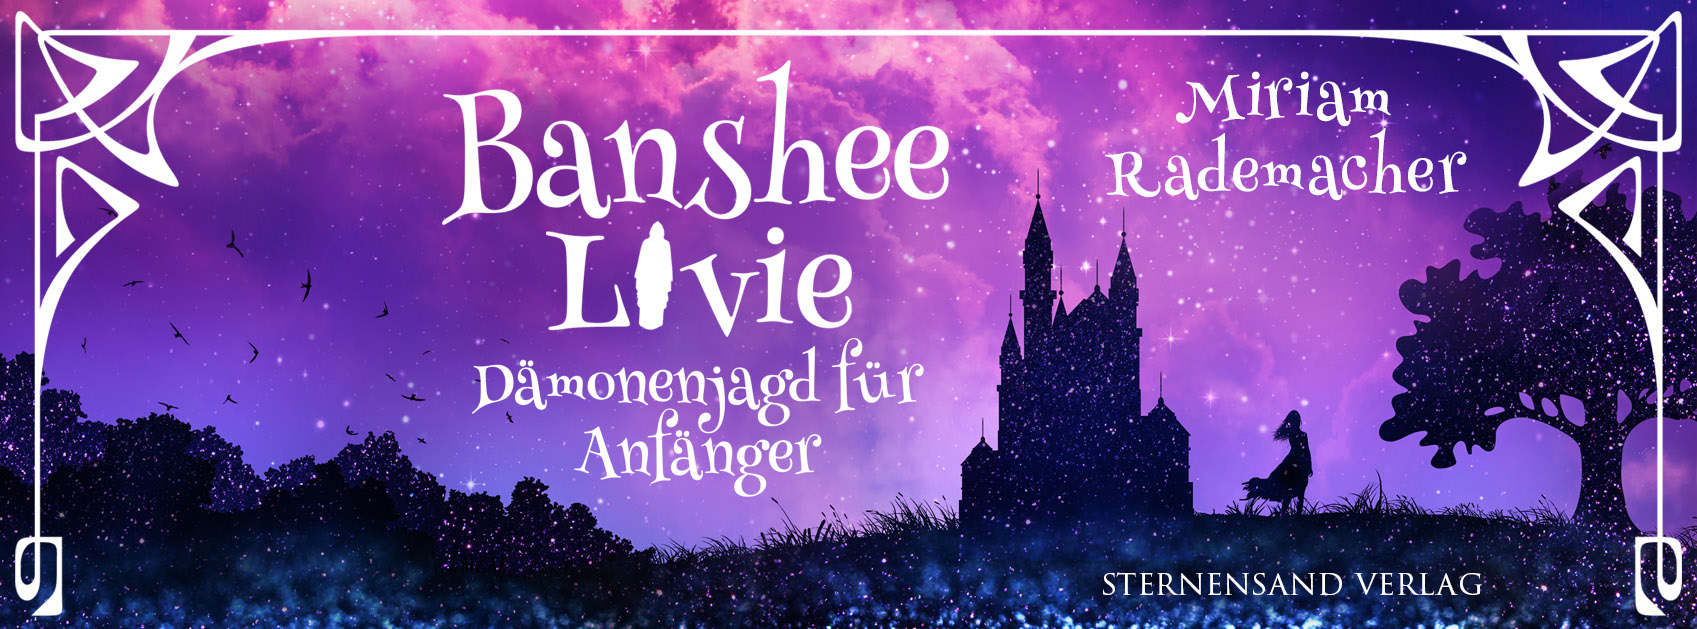 BansheeLivie Banner